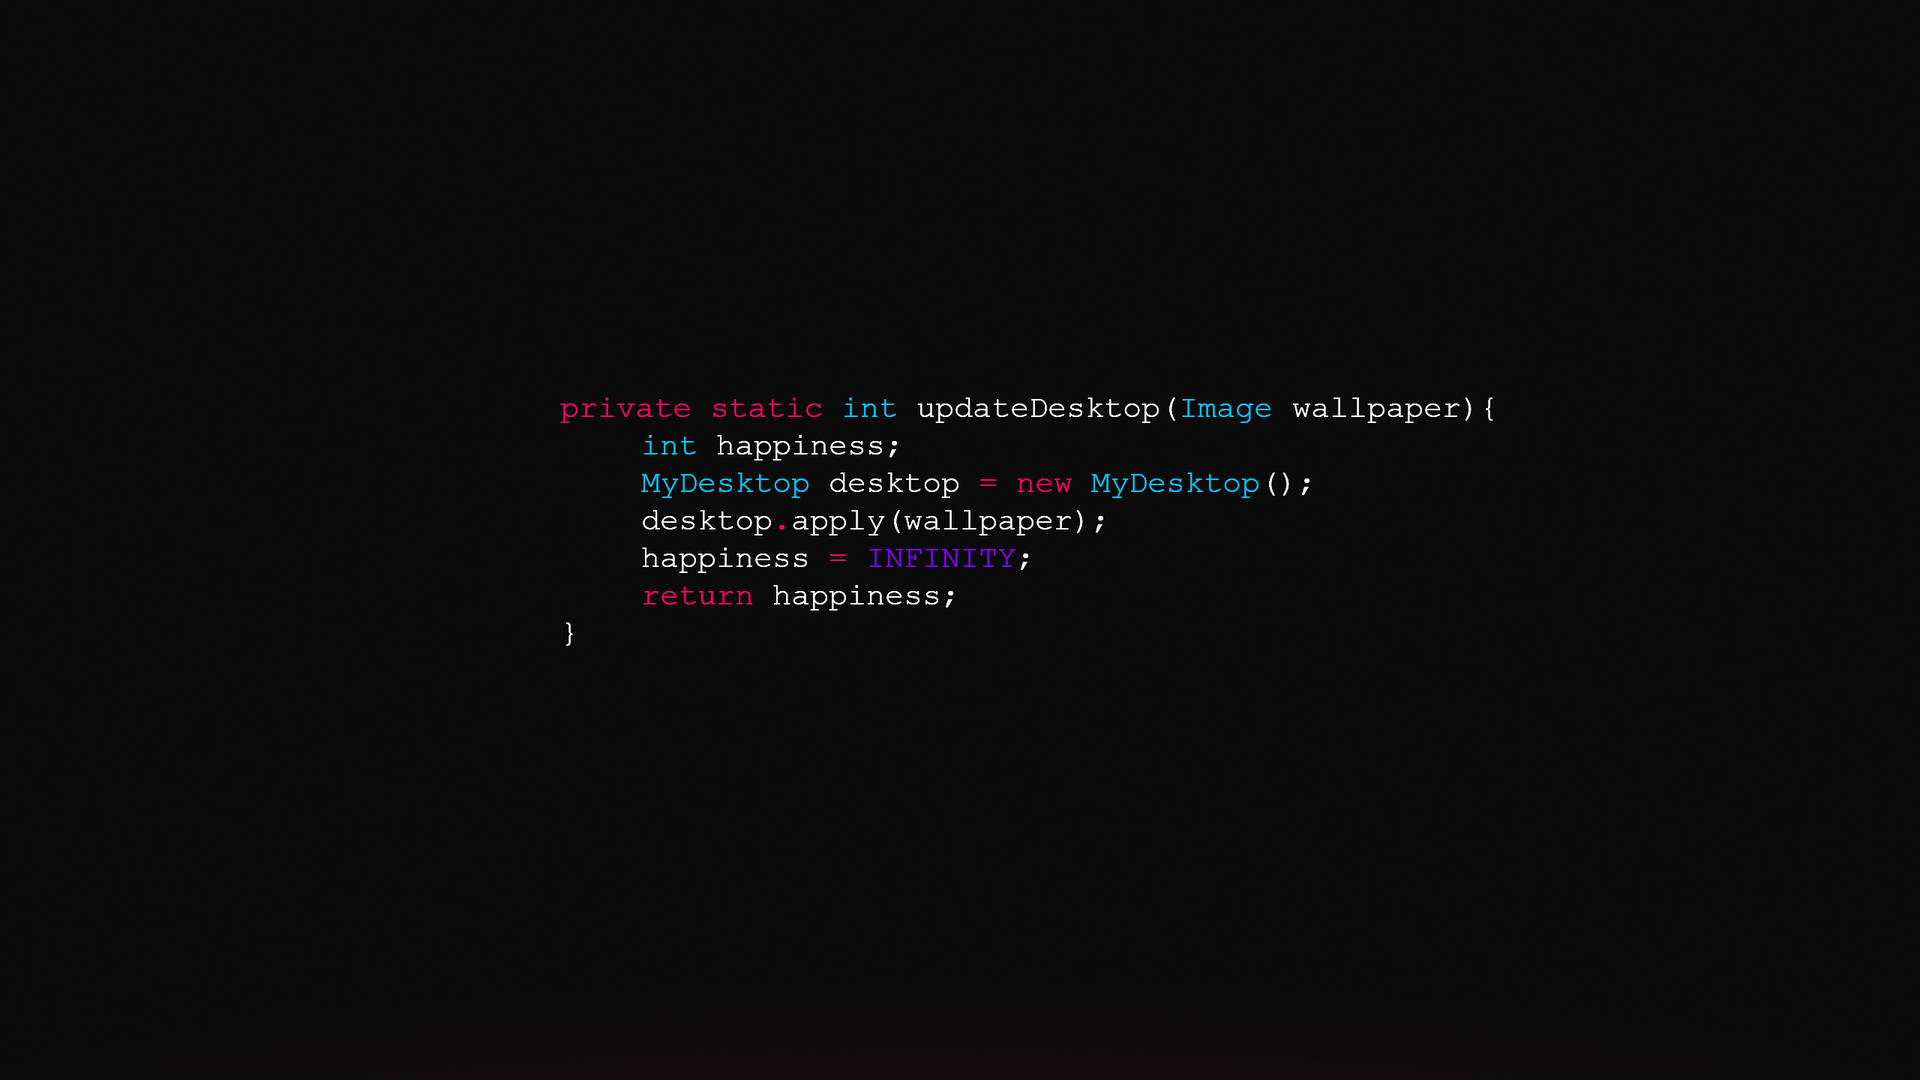 37 Programmer Code Wallpaper Backgrounds Free Download Code Wallpaper Computer Wallpaper Desktop Wallpapers Cool Backgrounds For Iphone